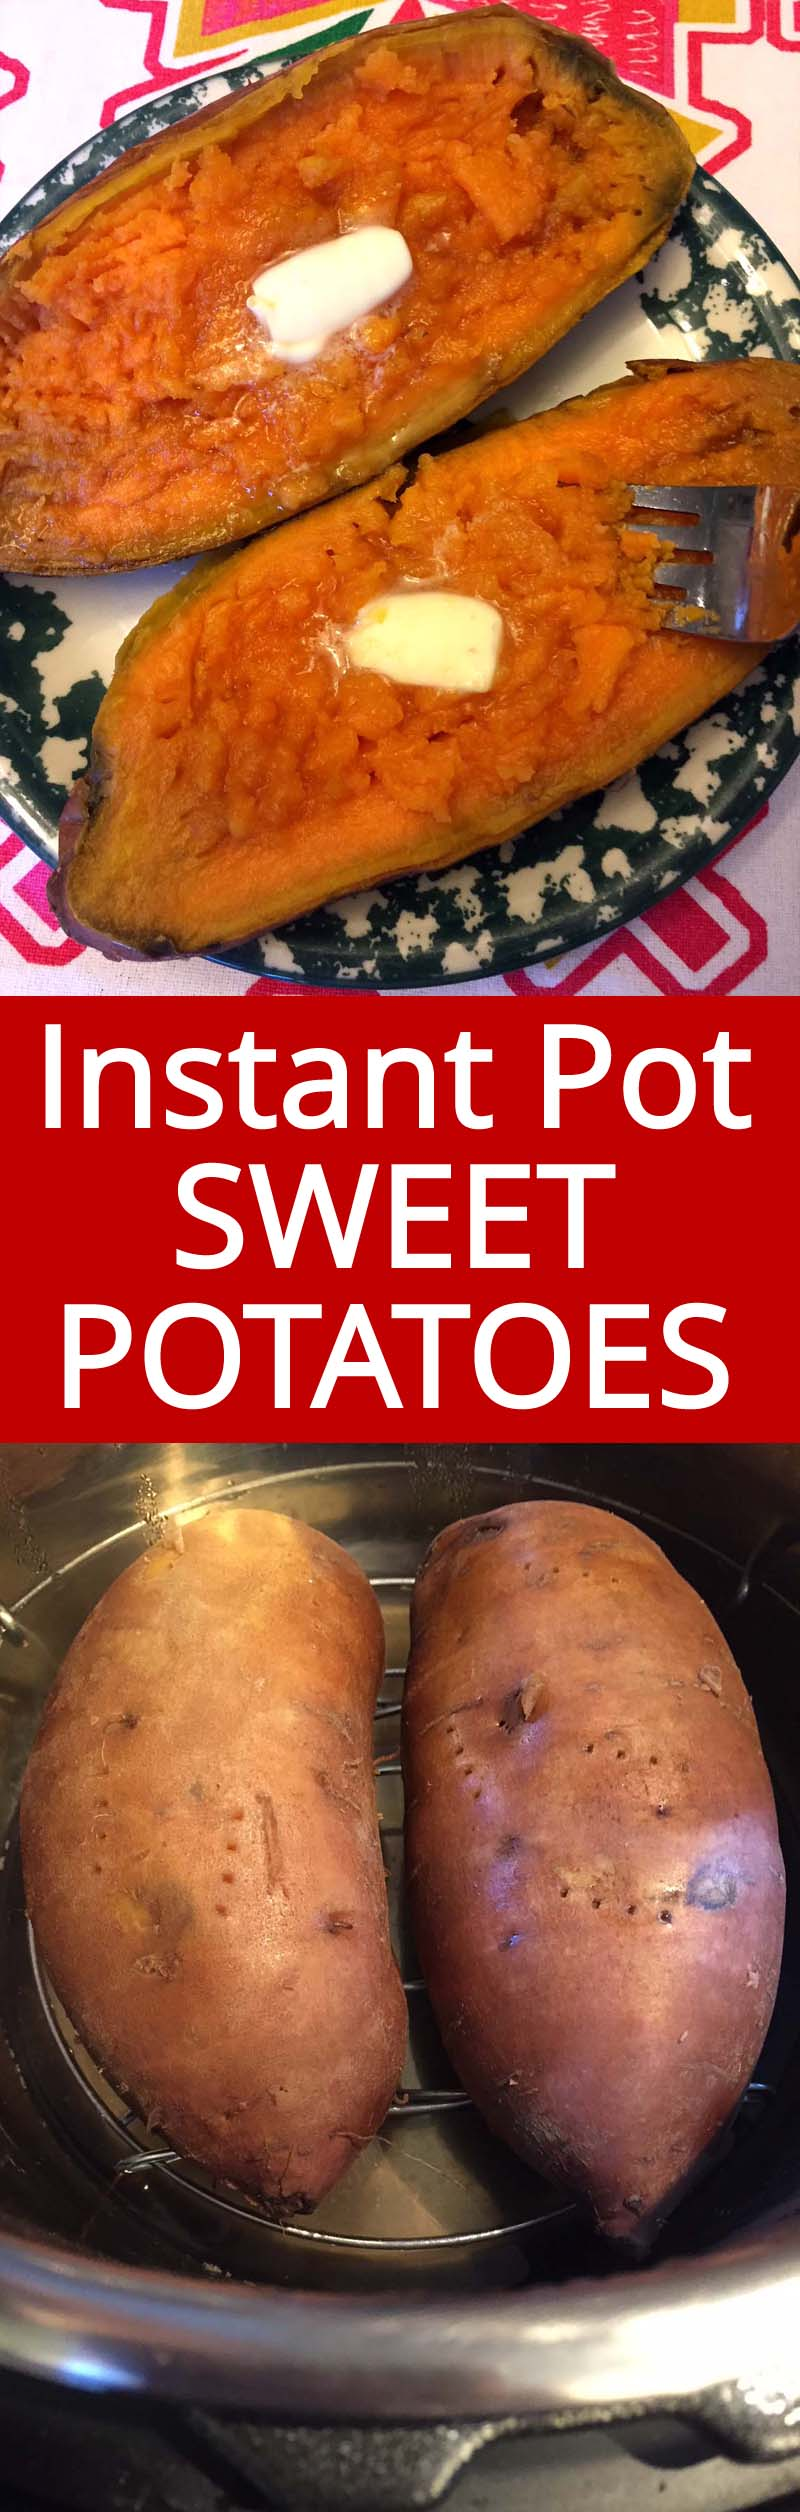 These Instant Pot baked potatoes are AMAZING! Perfectly cooked and so creamy! This is the only way I'll make baked sweet potatoes from now on! Instant Pot rules!!!